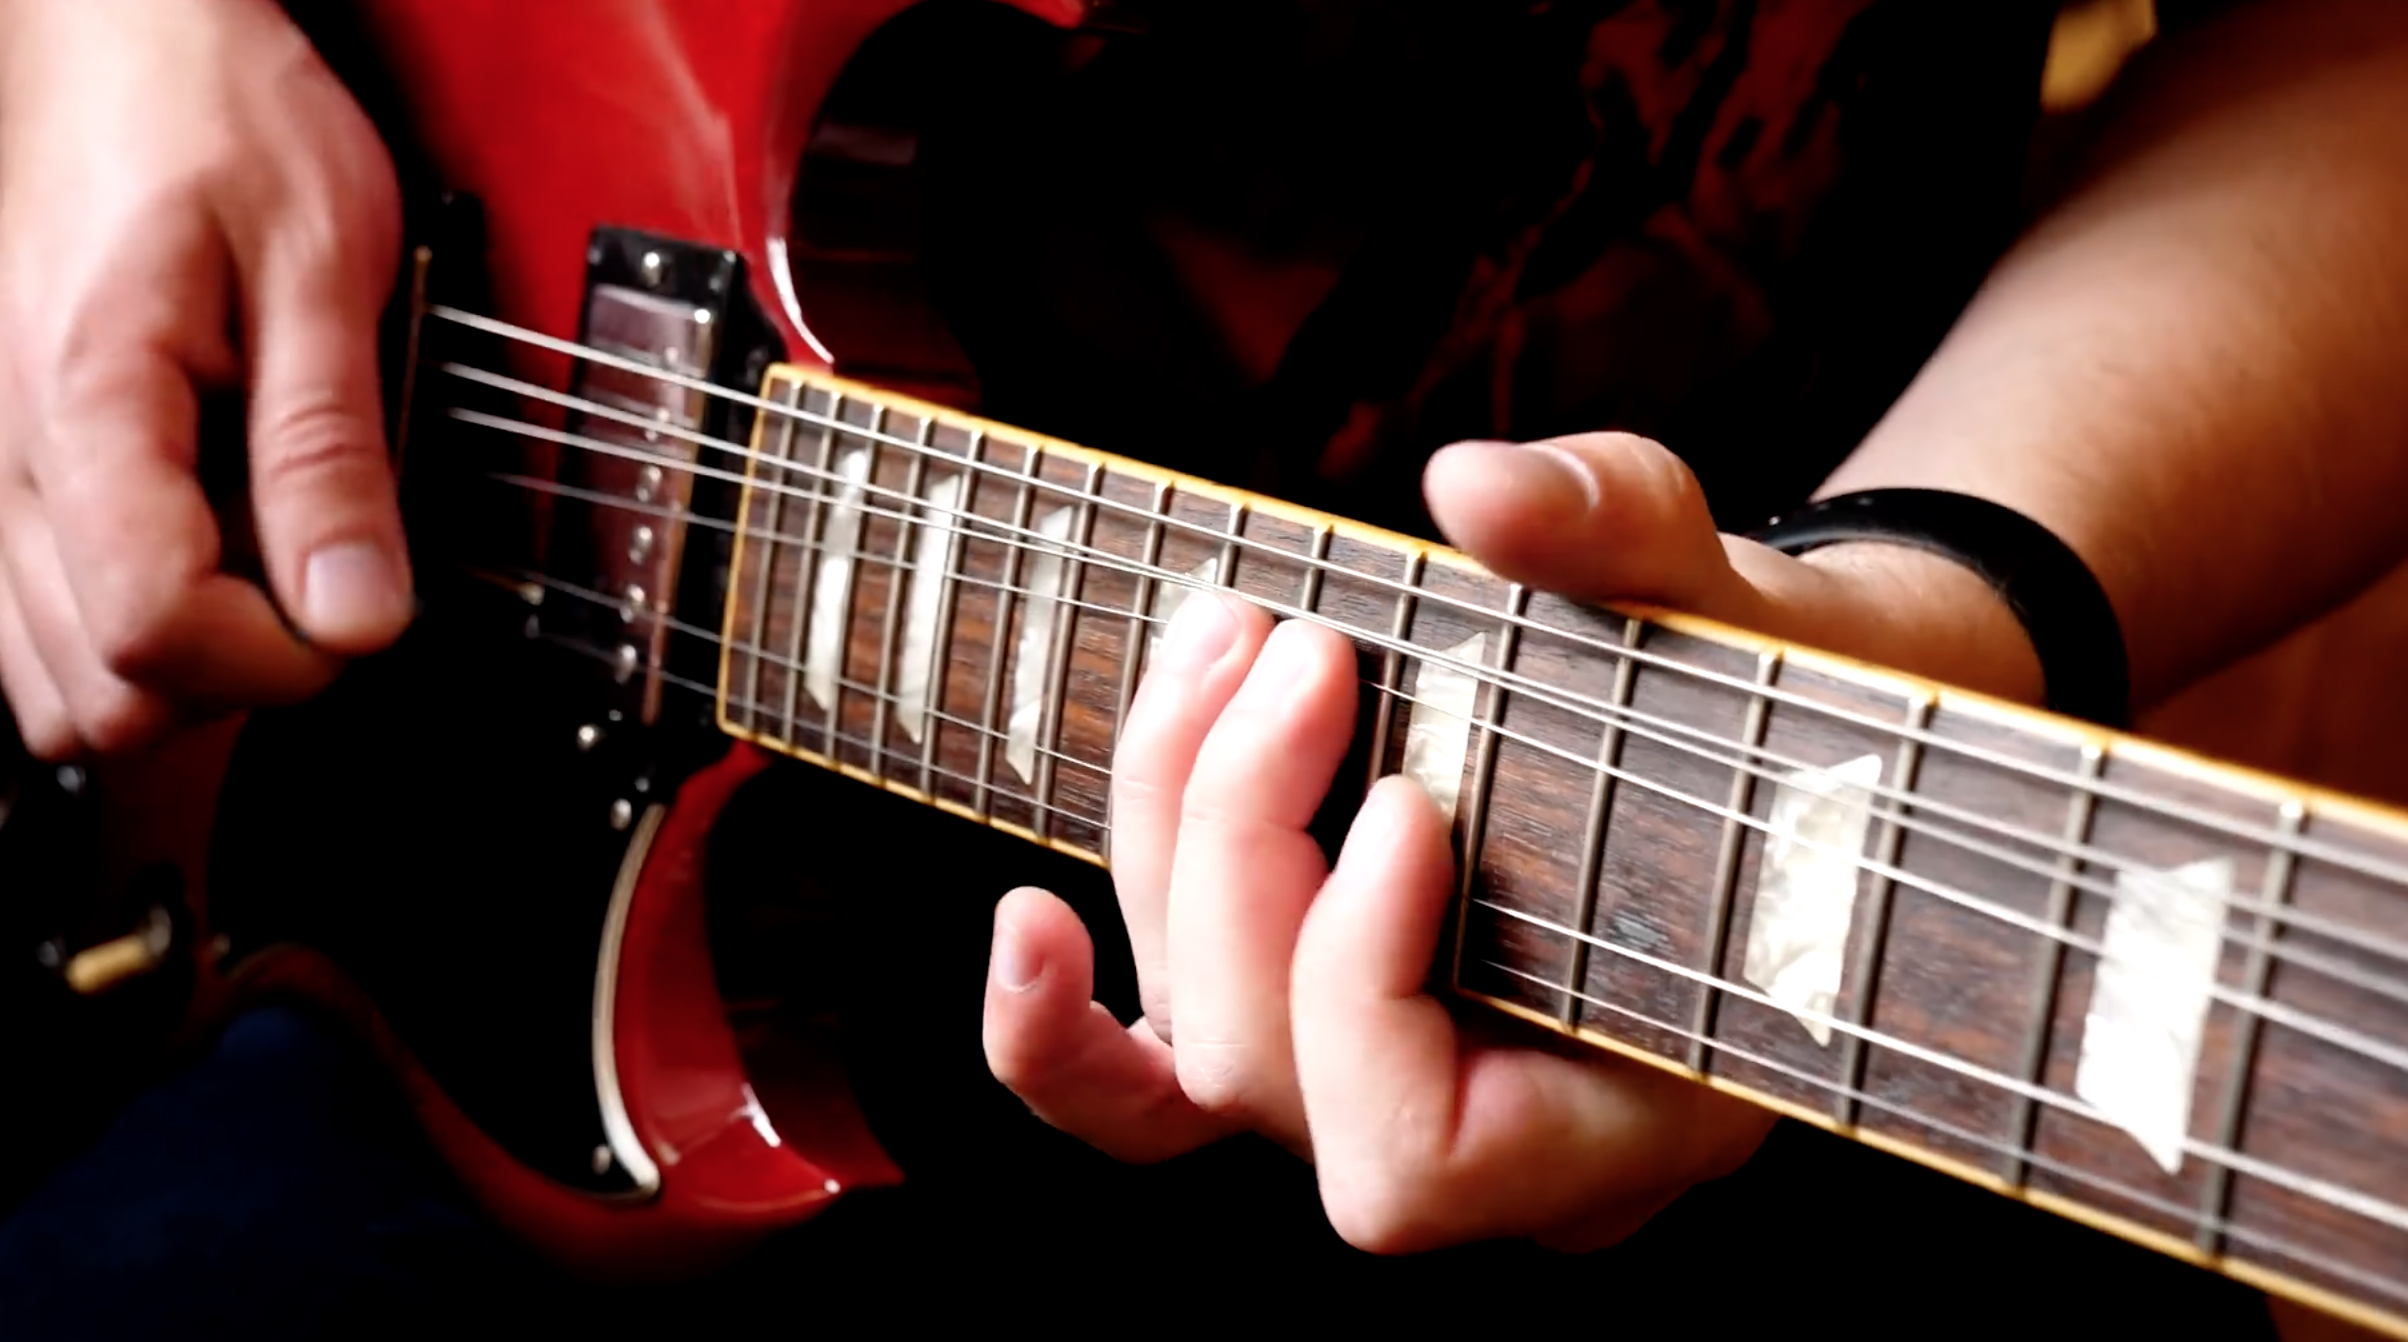 IMPROVISATION - While learning new licks and understanding music theory concepts is crucial to a developing guitar player, actually implementing these things is the key to finding your voice on the instrument, which should be any musician's ultimate goal. Take these lessons with a grain of salt, because they're not meant to teach you exact passages or patterns–they're meant to inspire you and unlock new doors in your creativity.